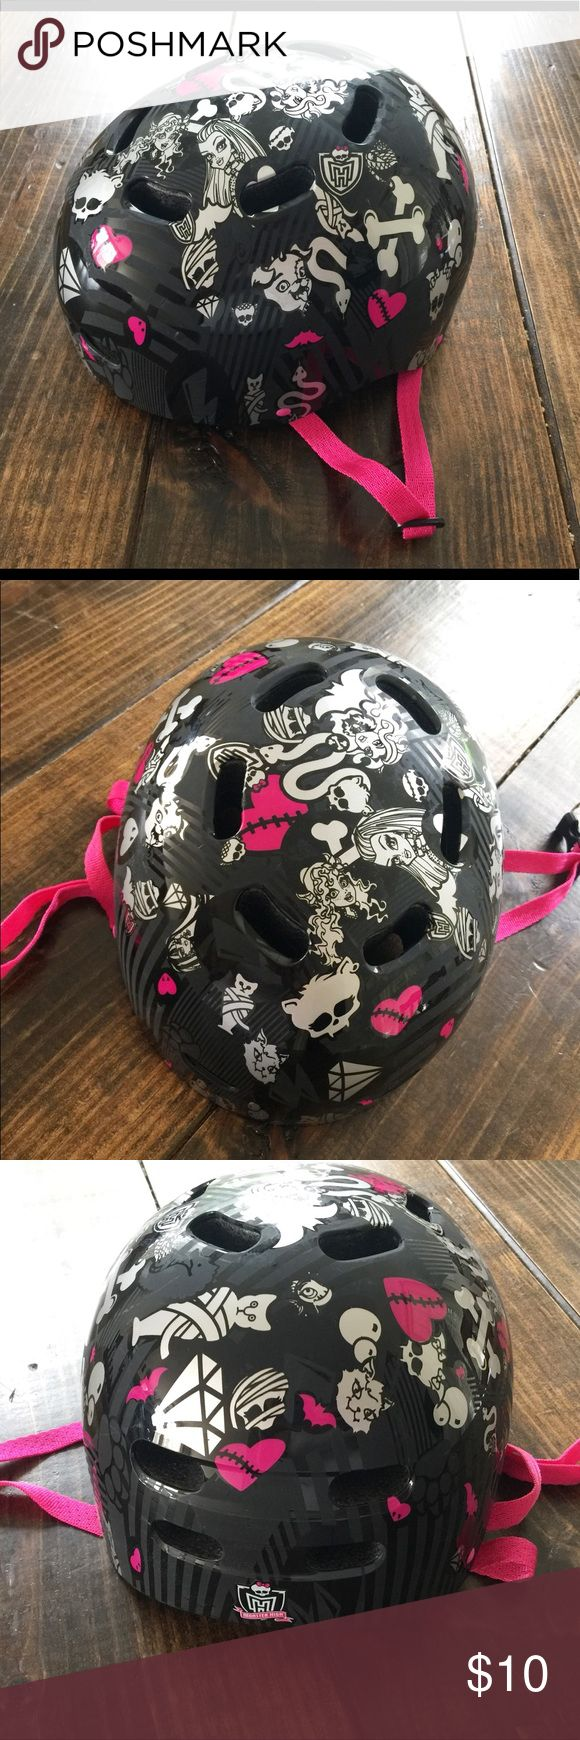 Girls helmet Girls monster high black and pink helmet. Inside of the helmet specifies it's for skateboarding or trick roller skating. My daughter used it for bike riding. Never been in an accident or thrown on the ground. Garage kept. Inside Velcro cushions are in perfect condition. monster high Accessories